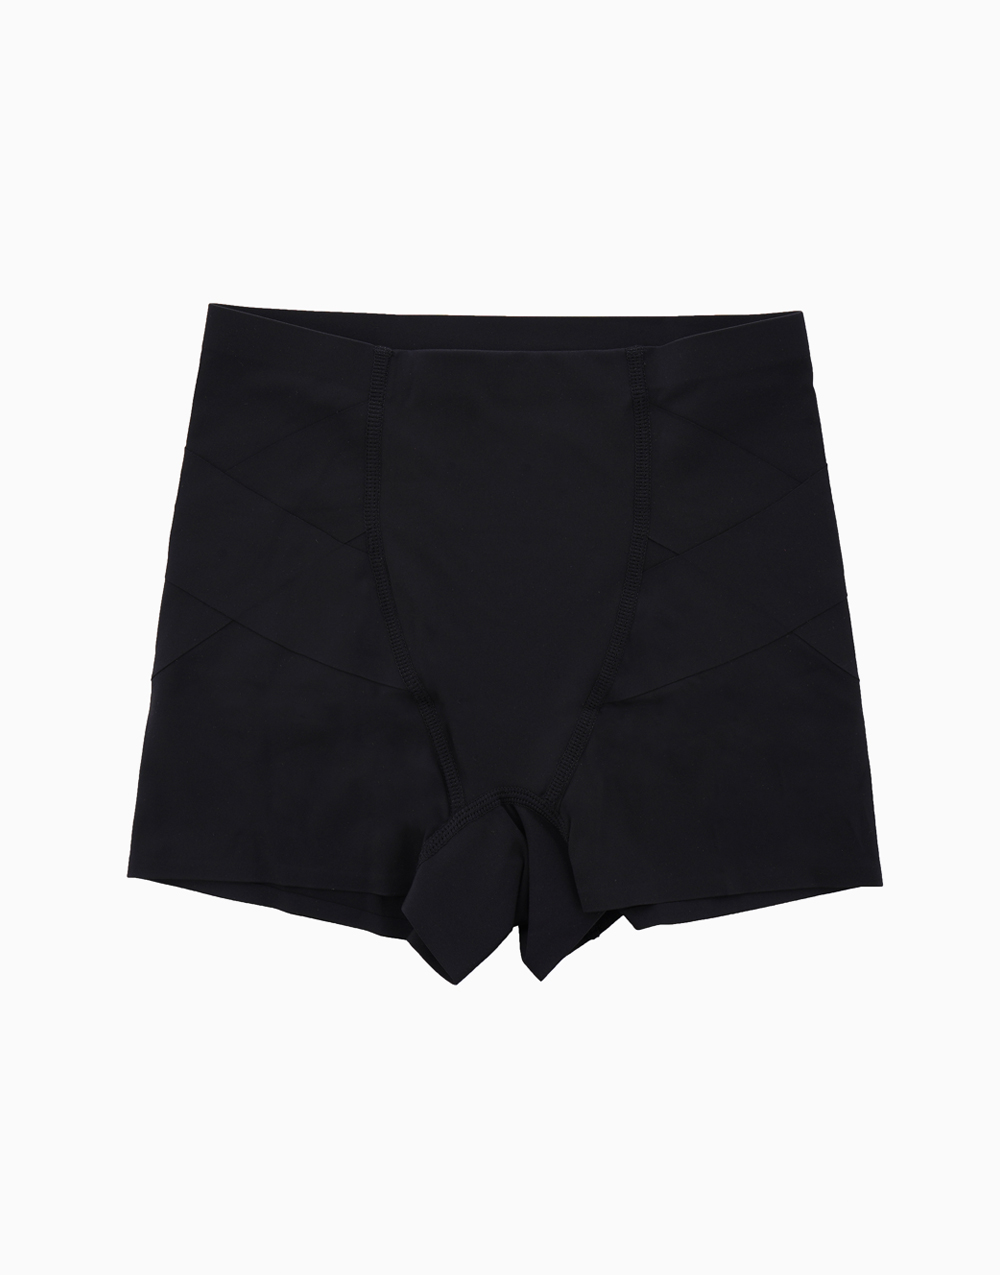 Booty Trainer Butt & Hip Compression Shorts in Black by Jellyfit | Small